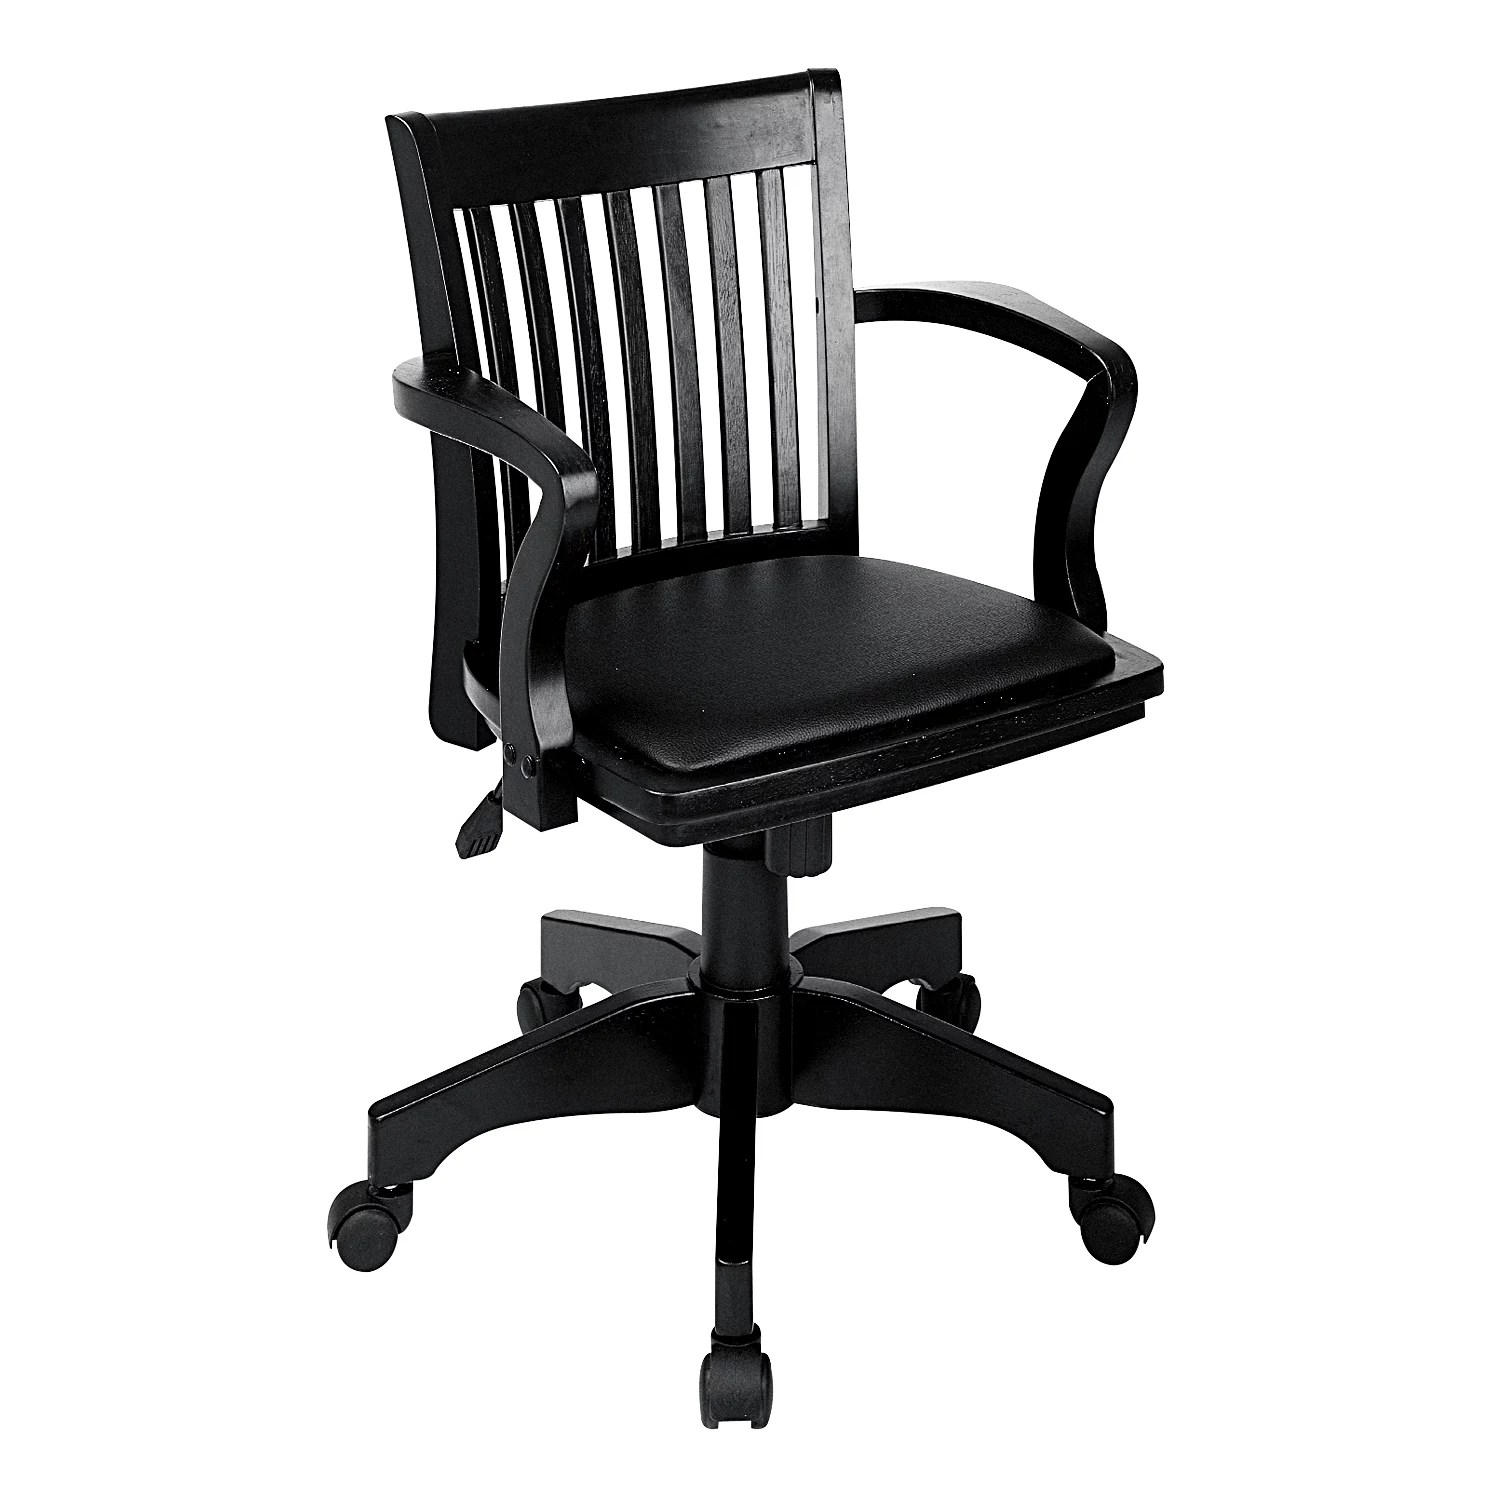 dorm chairs kohls heywood wakefield wicker kohl s office star products deluxe banker chair with vinyl seat